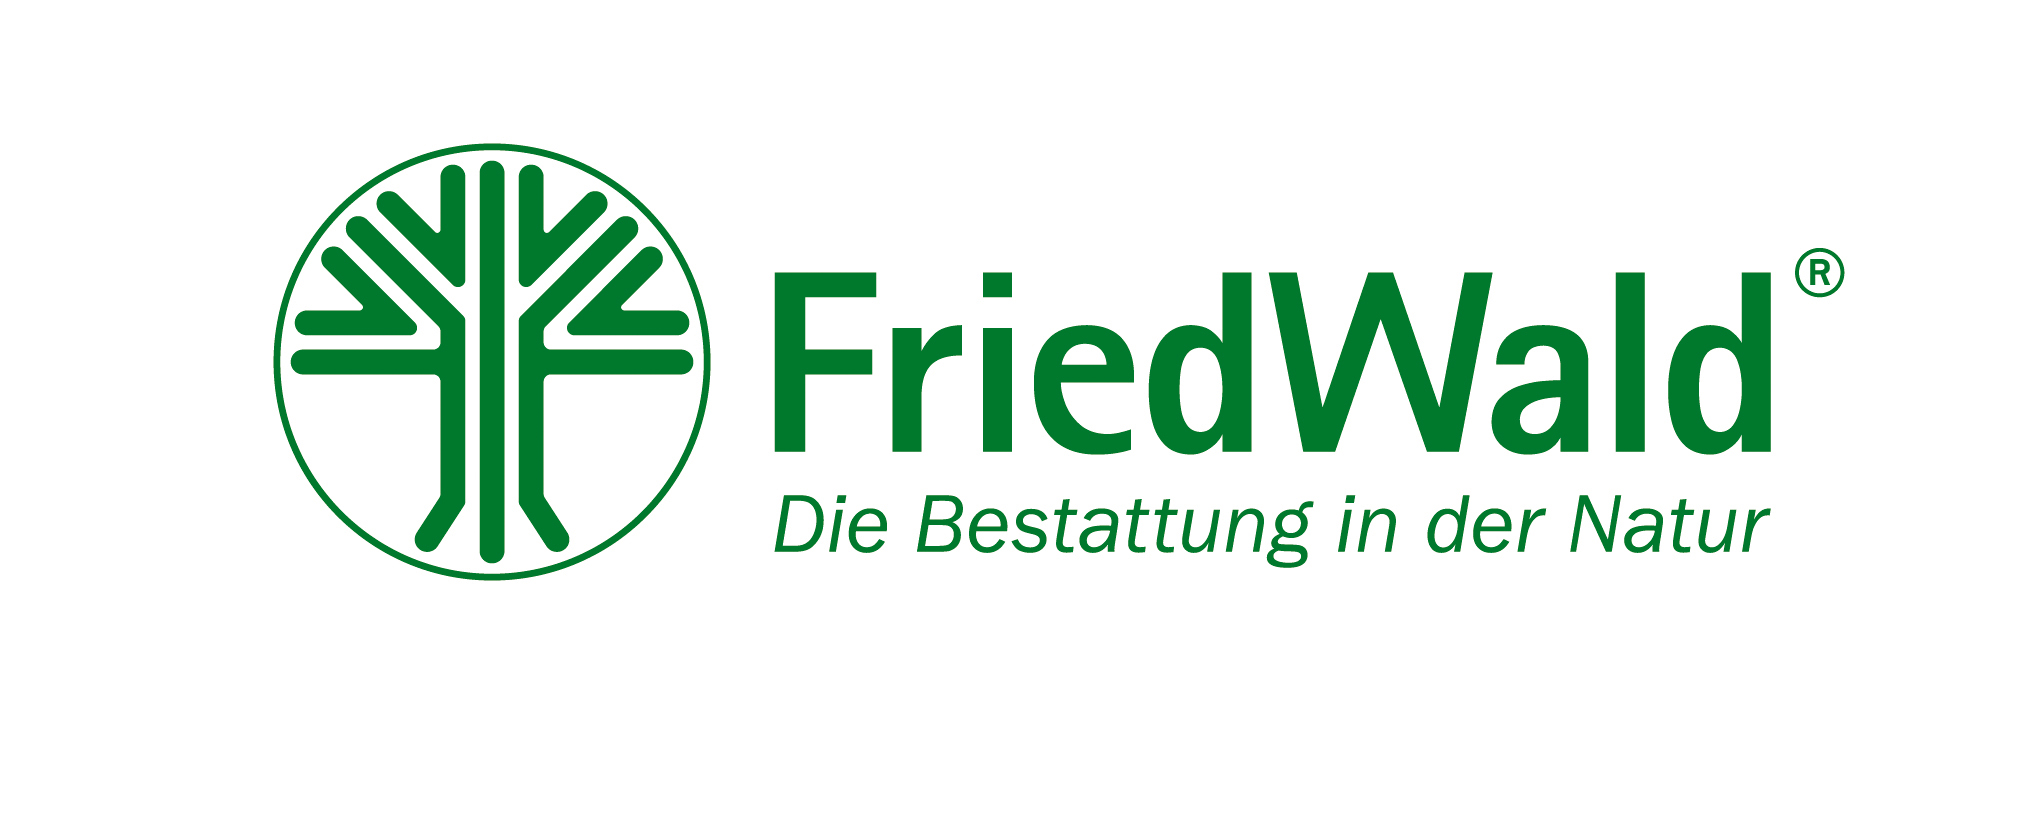 friedwald_logo_final_mit_claim_rgb